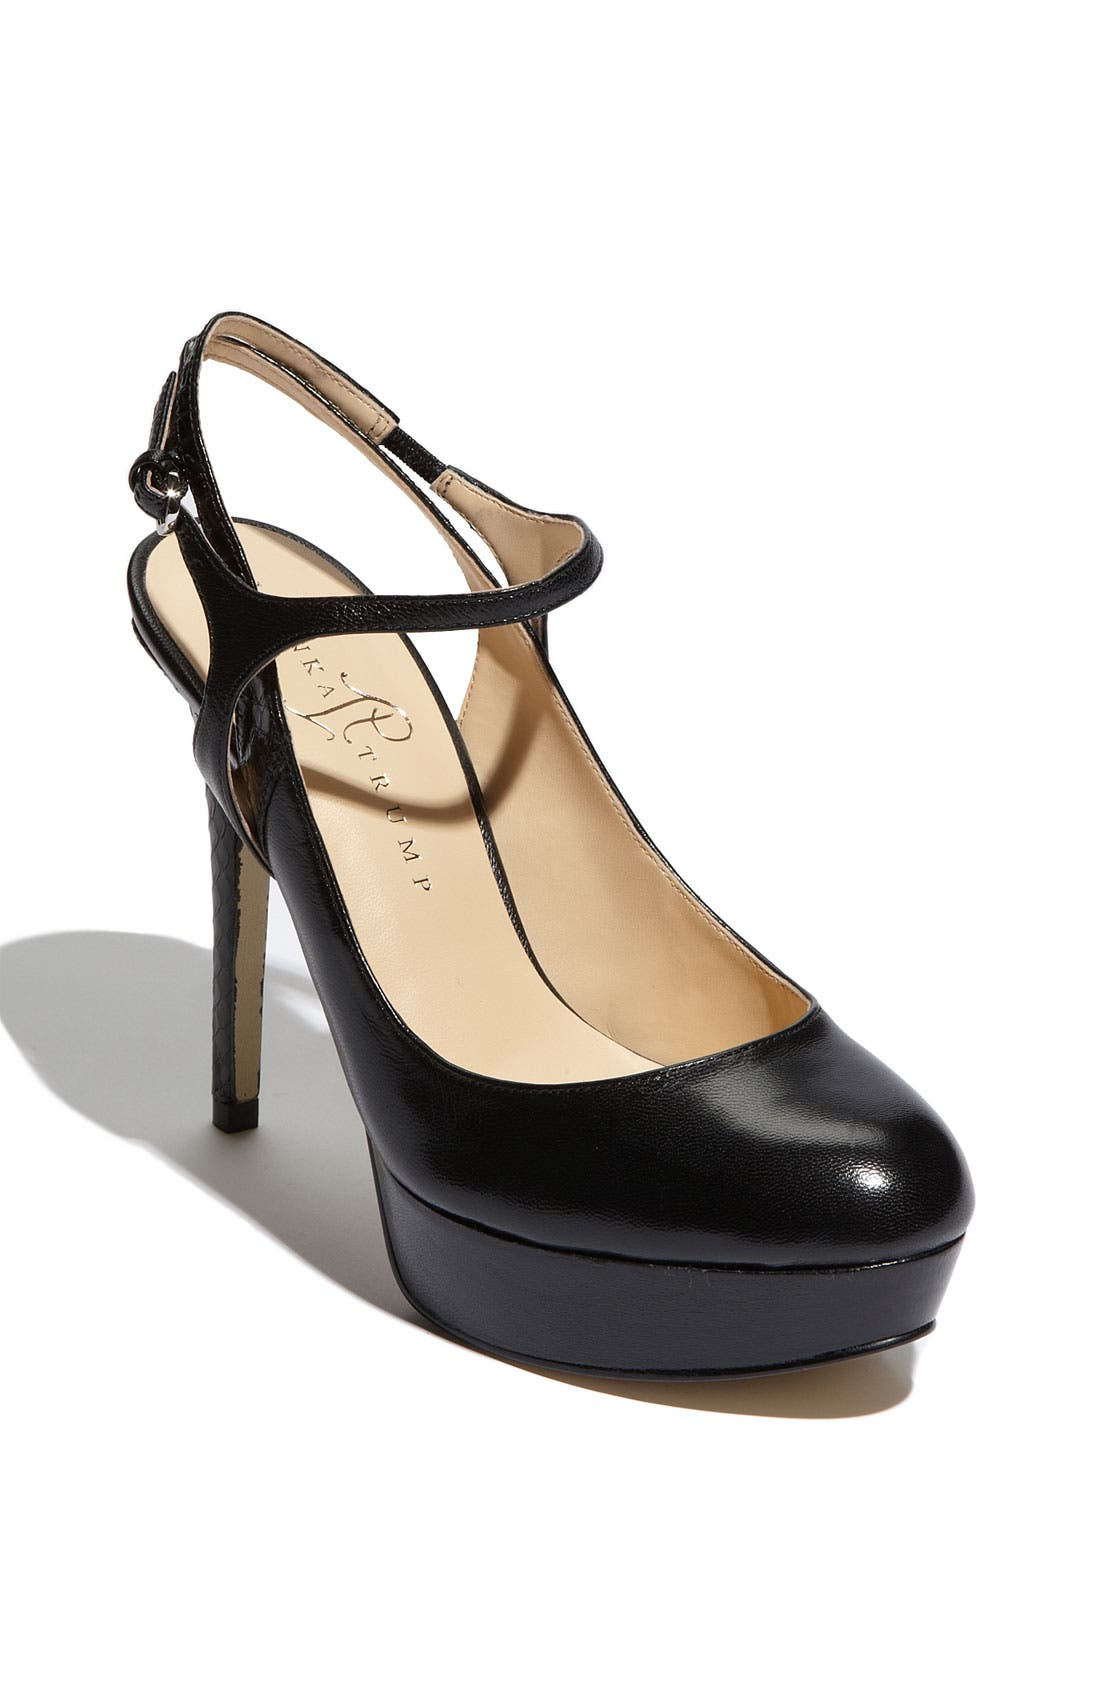 Alternate Image 1 Selected - Ivanka Trump 'Taran' Pump